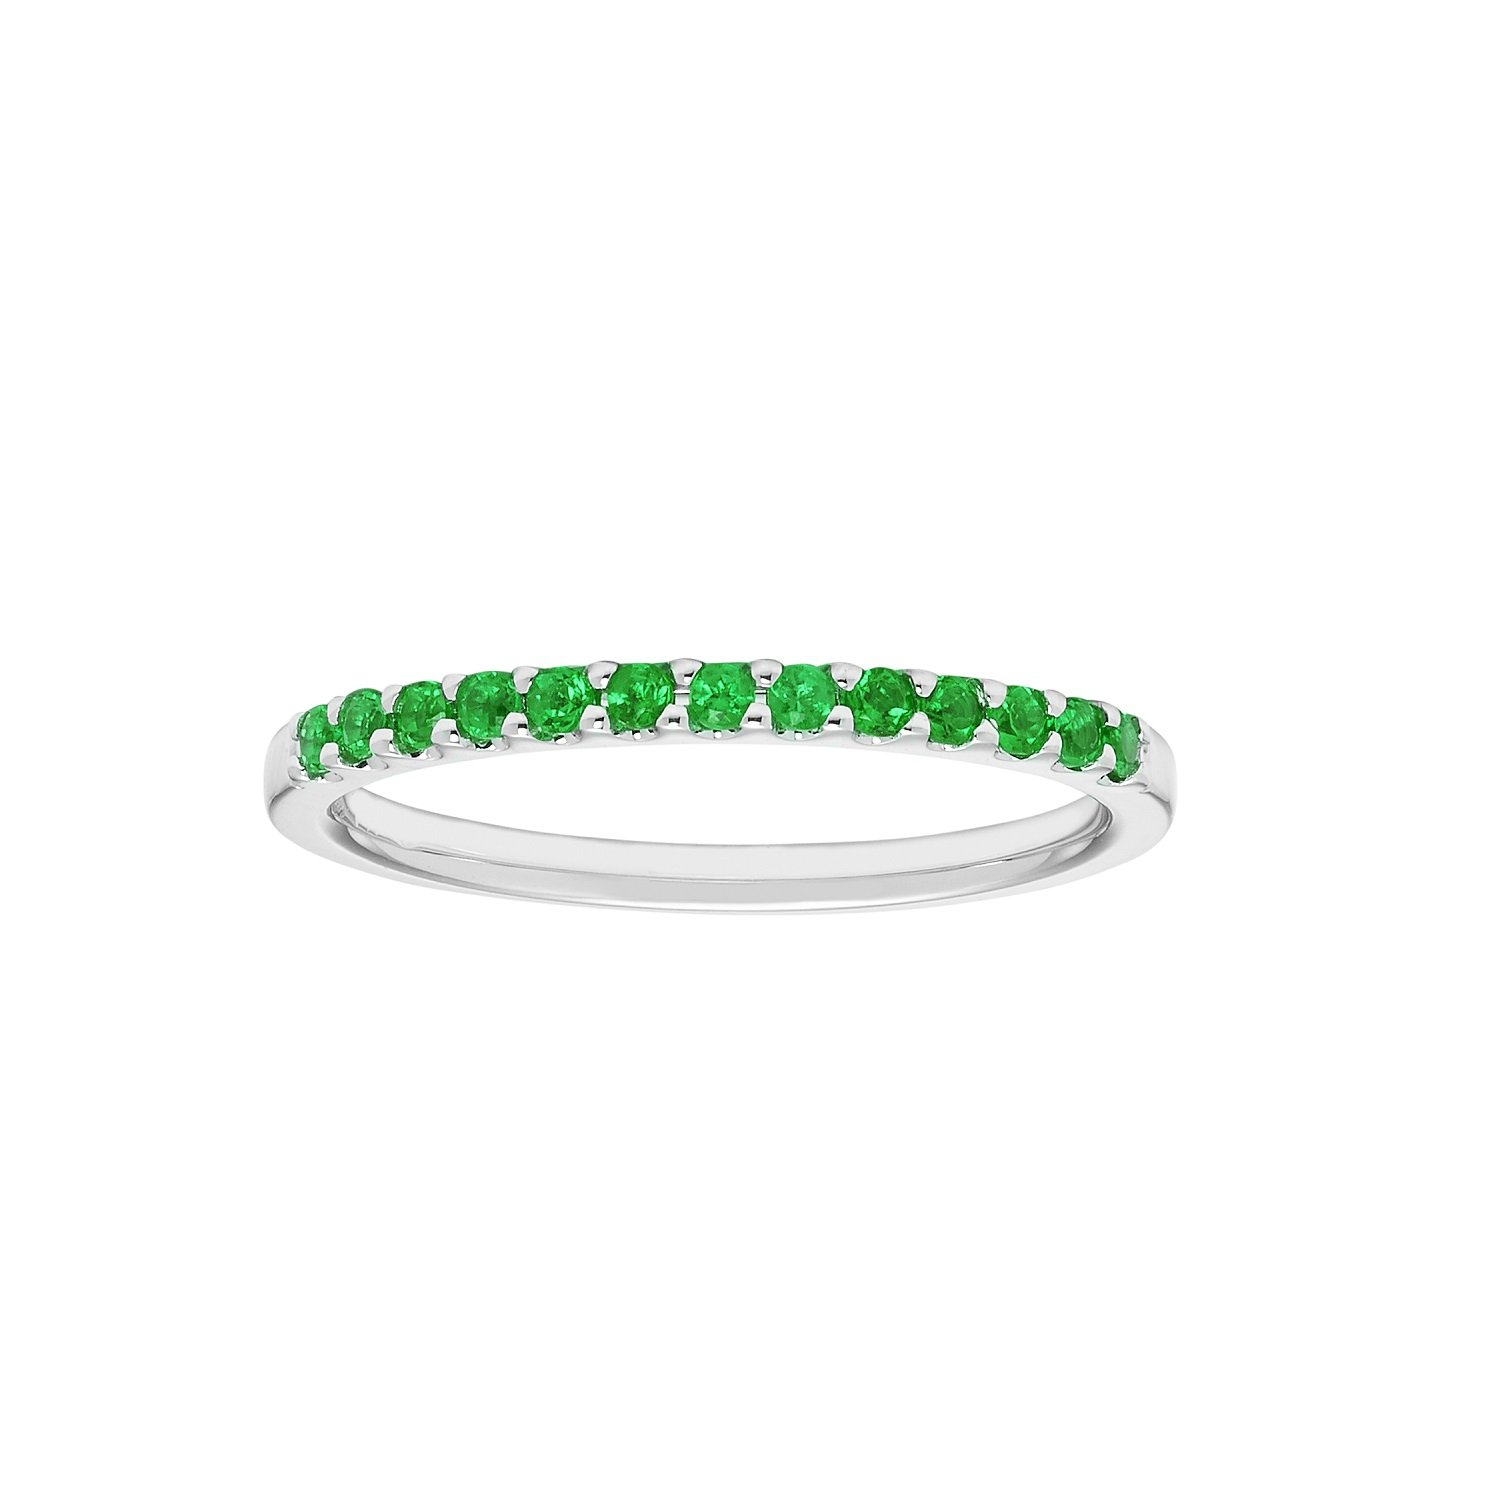 14K White Gold 1/5 Cttw Genuine Emerald Stackable 2MM Wedding Anniversary Band Ring - May Birthstone, Size 6